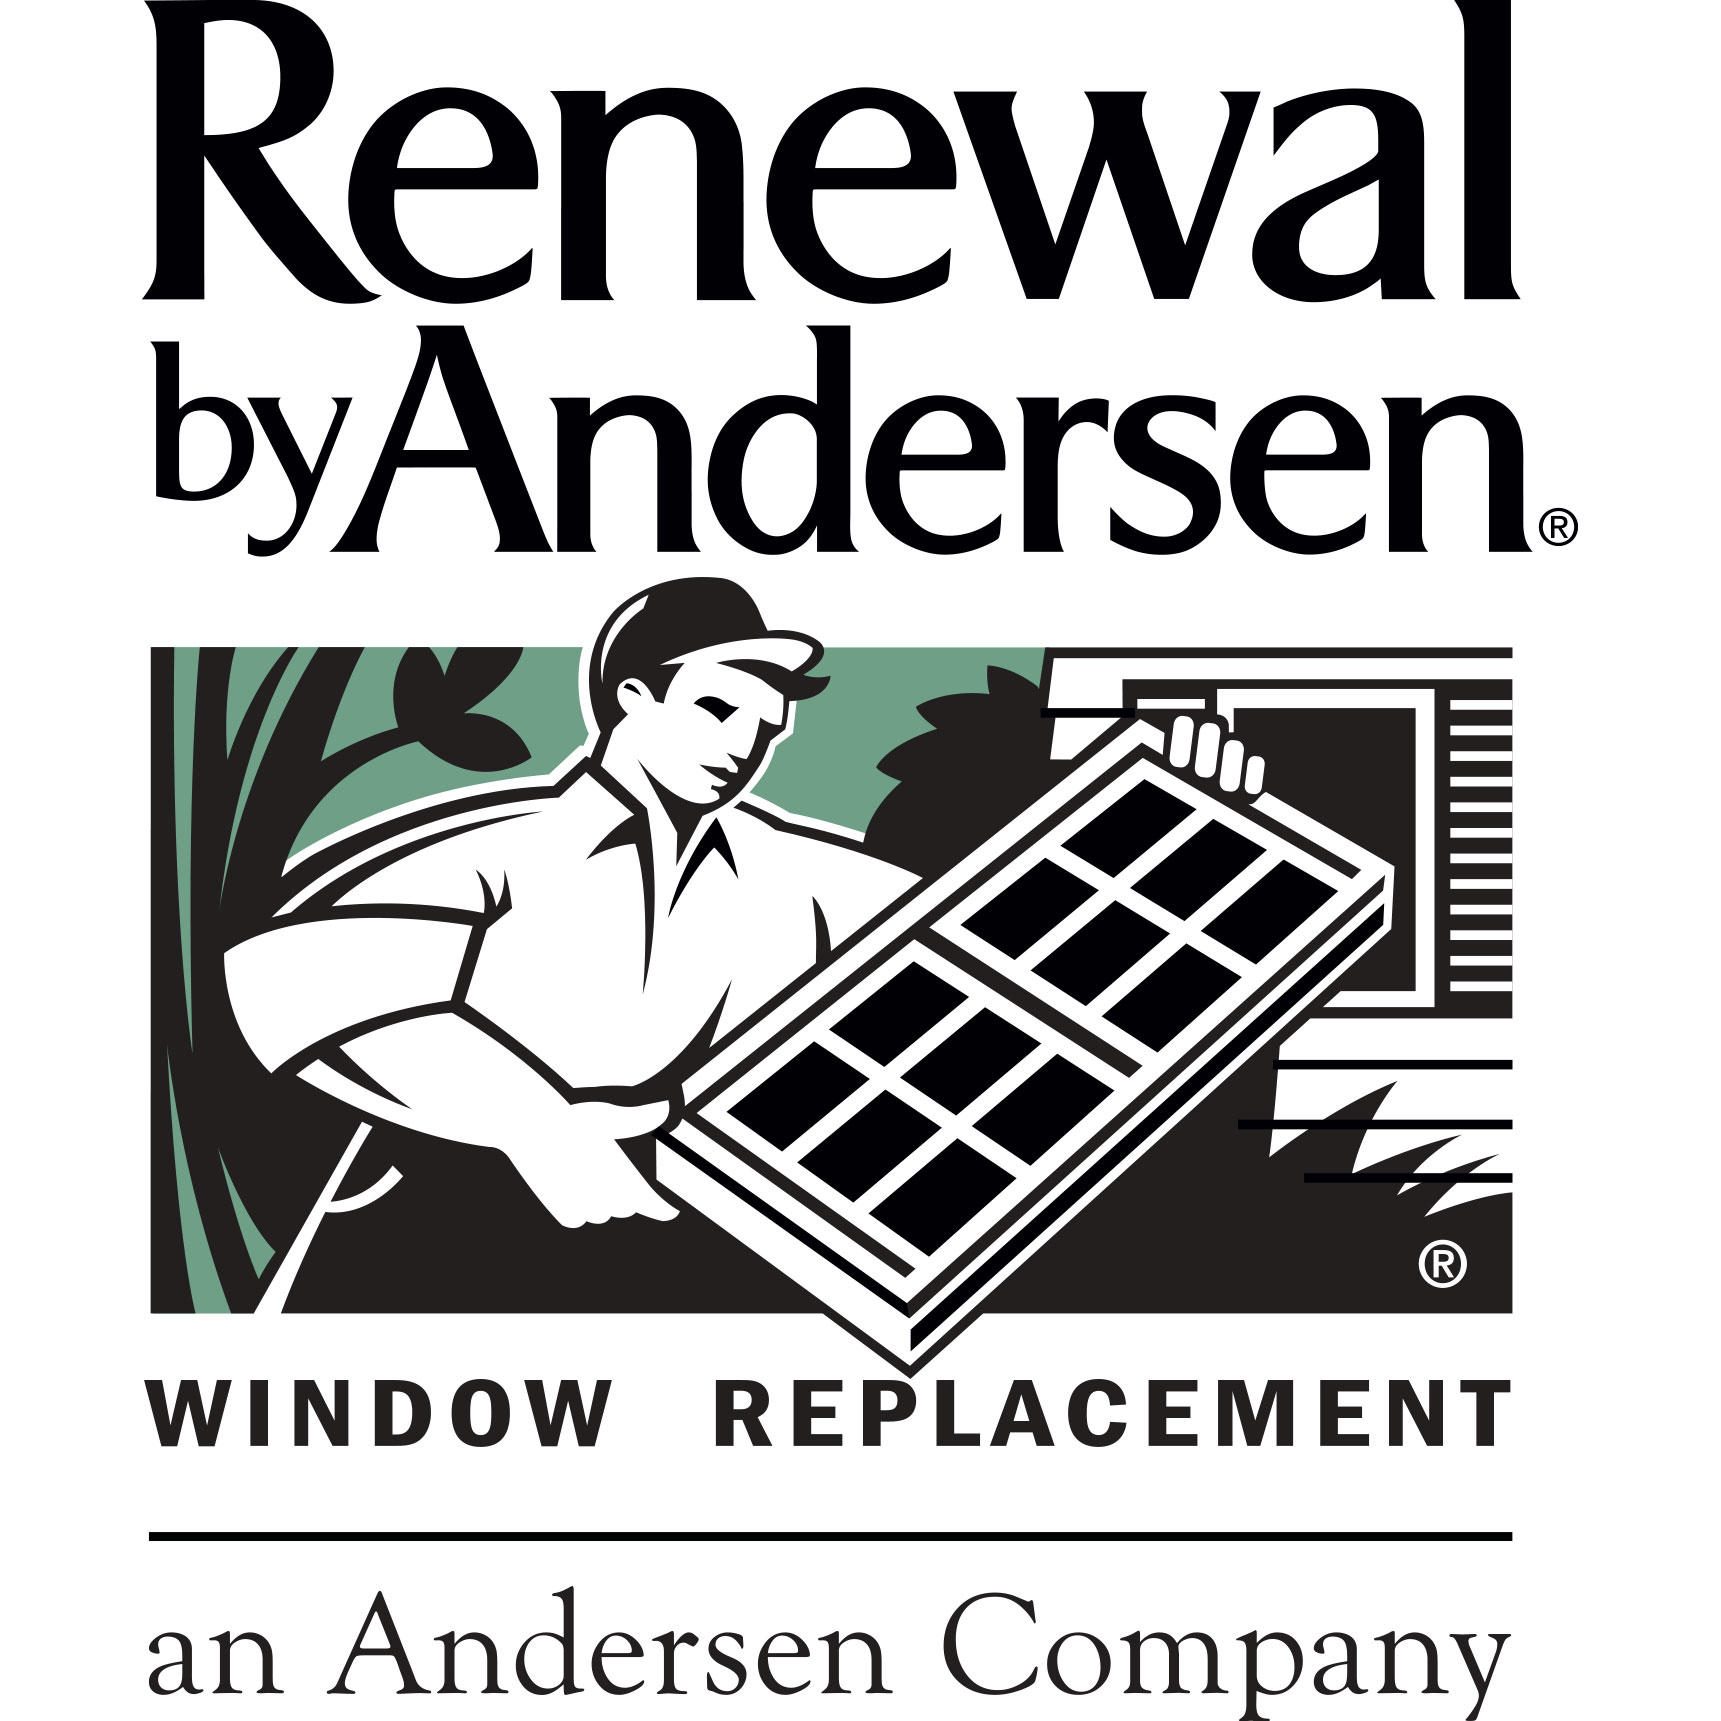 Renewal by Andersen Window Replacement - Louisville, KY - Windows & Door Contractors